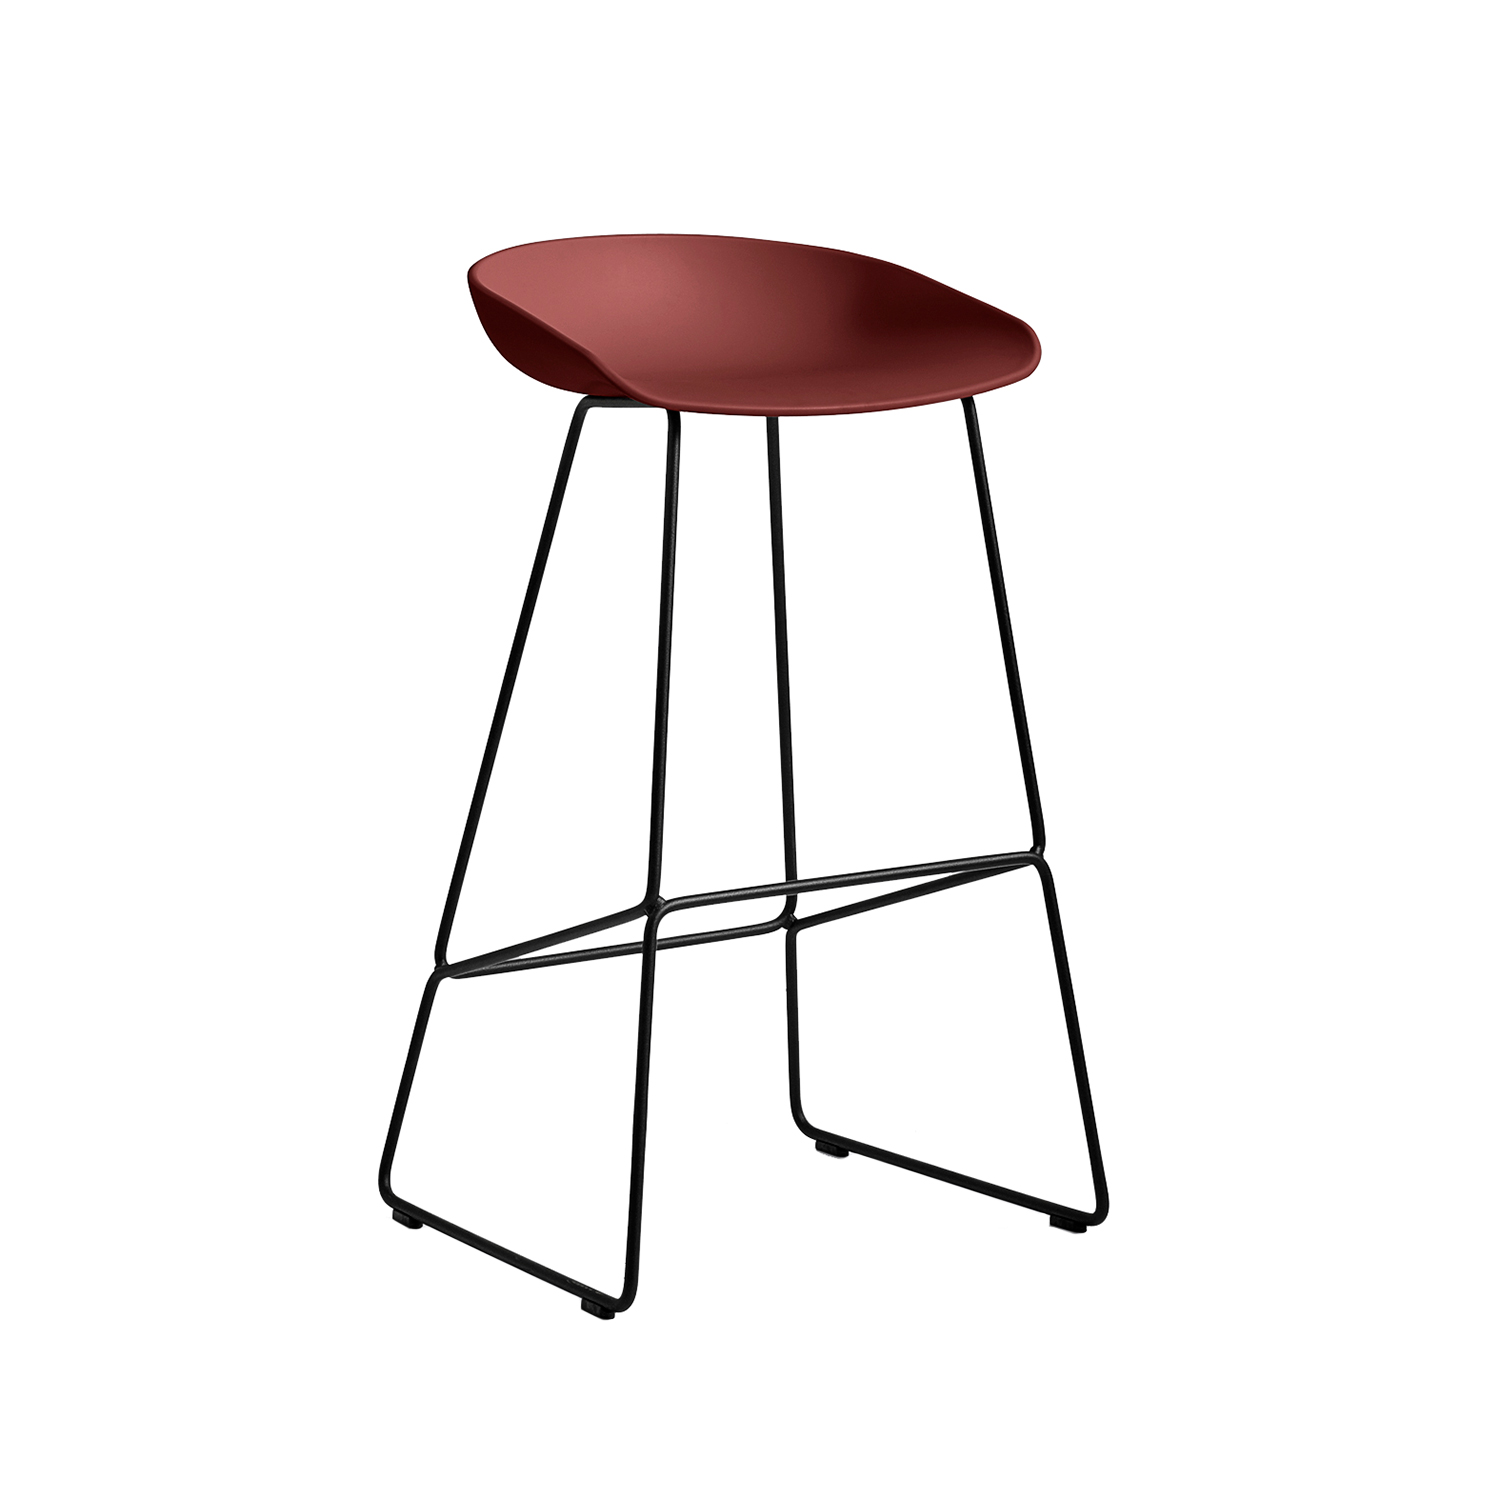 About a Stool 38 barstol h75, tegel/svart